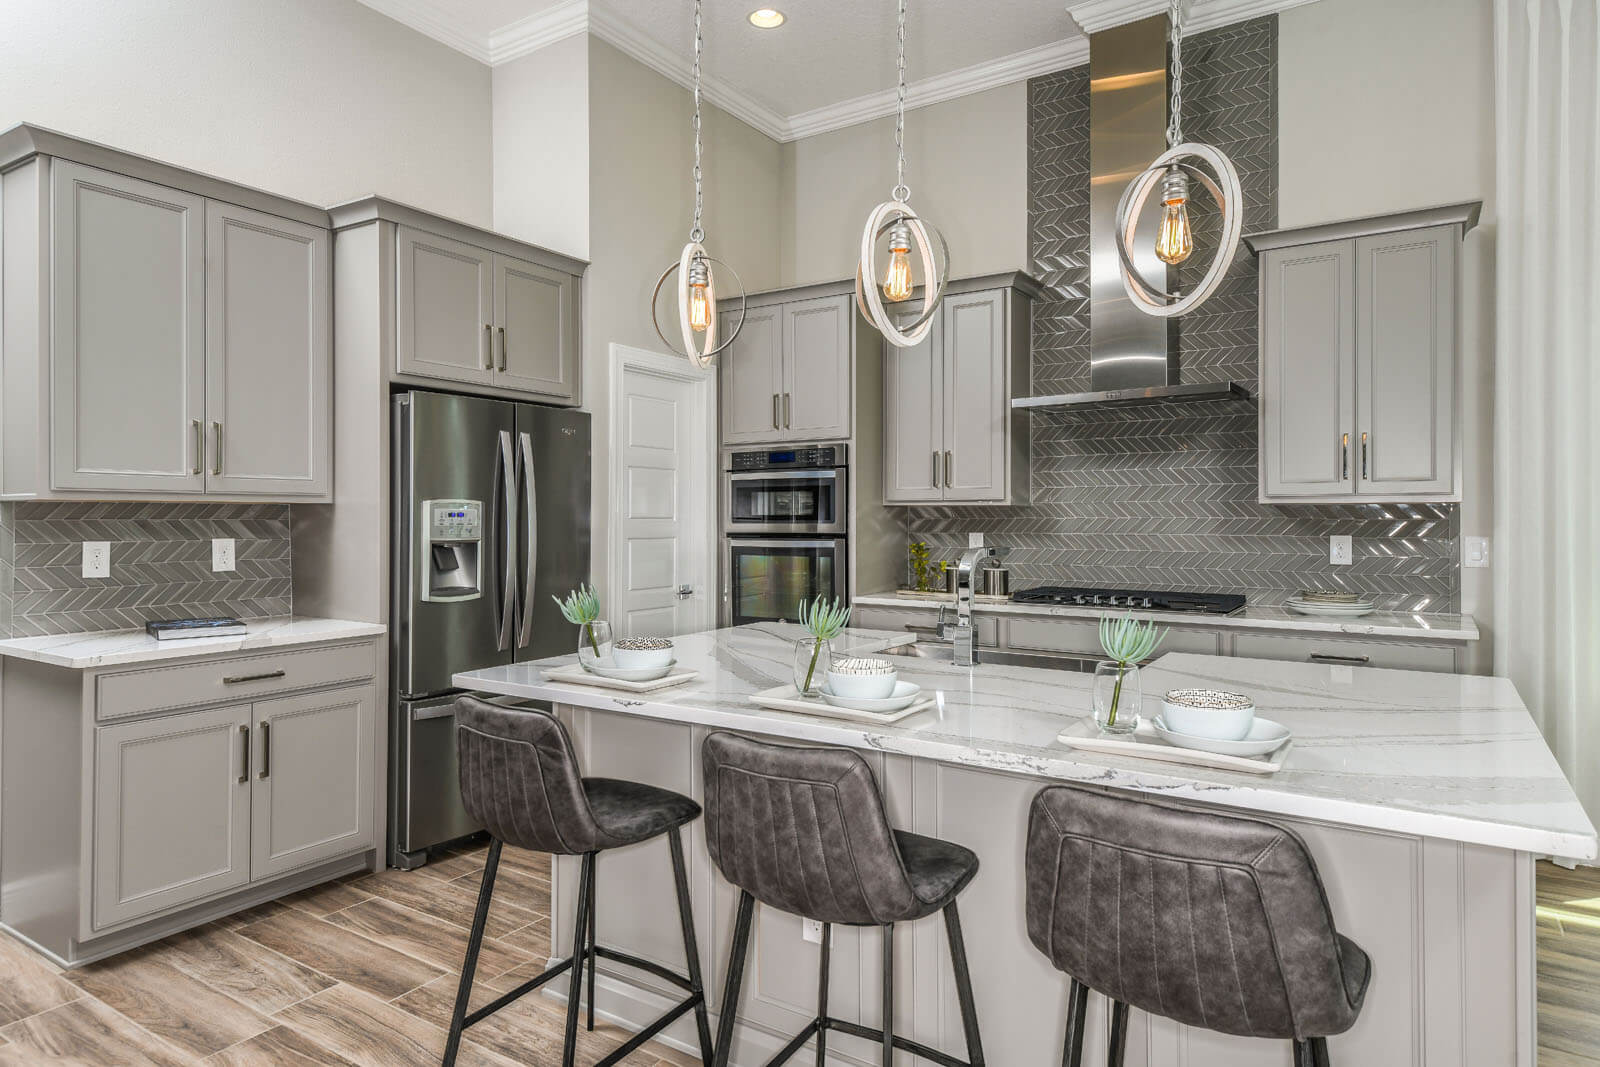 New Tampa  Model Home Henley in Bexley, located at 4093 Epic Cove, Land O' Lakes Built By Cardel Homes Tampa